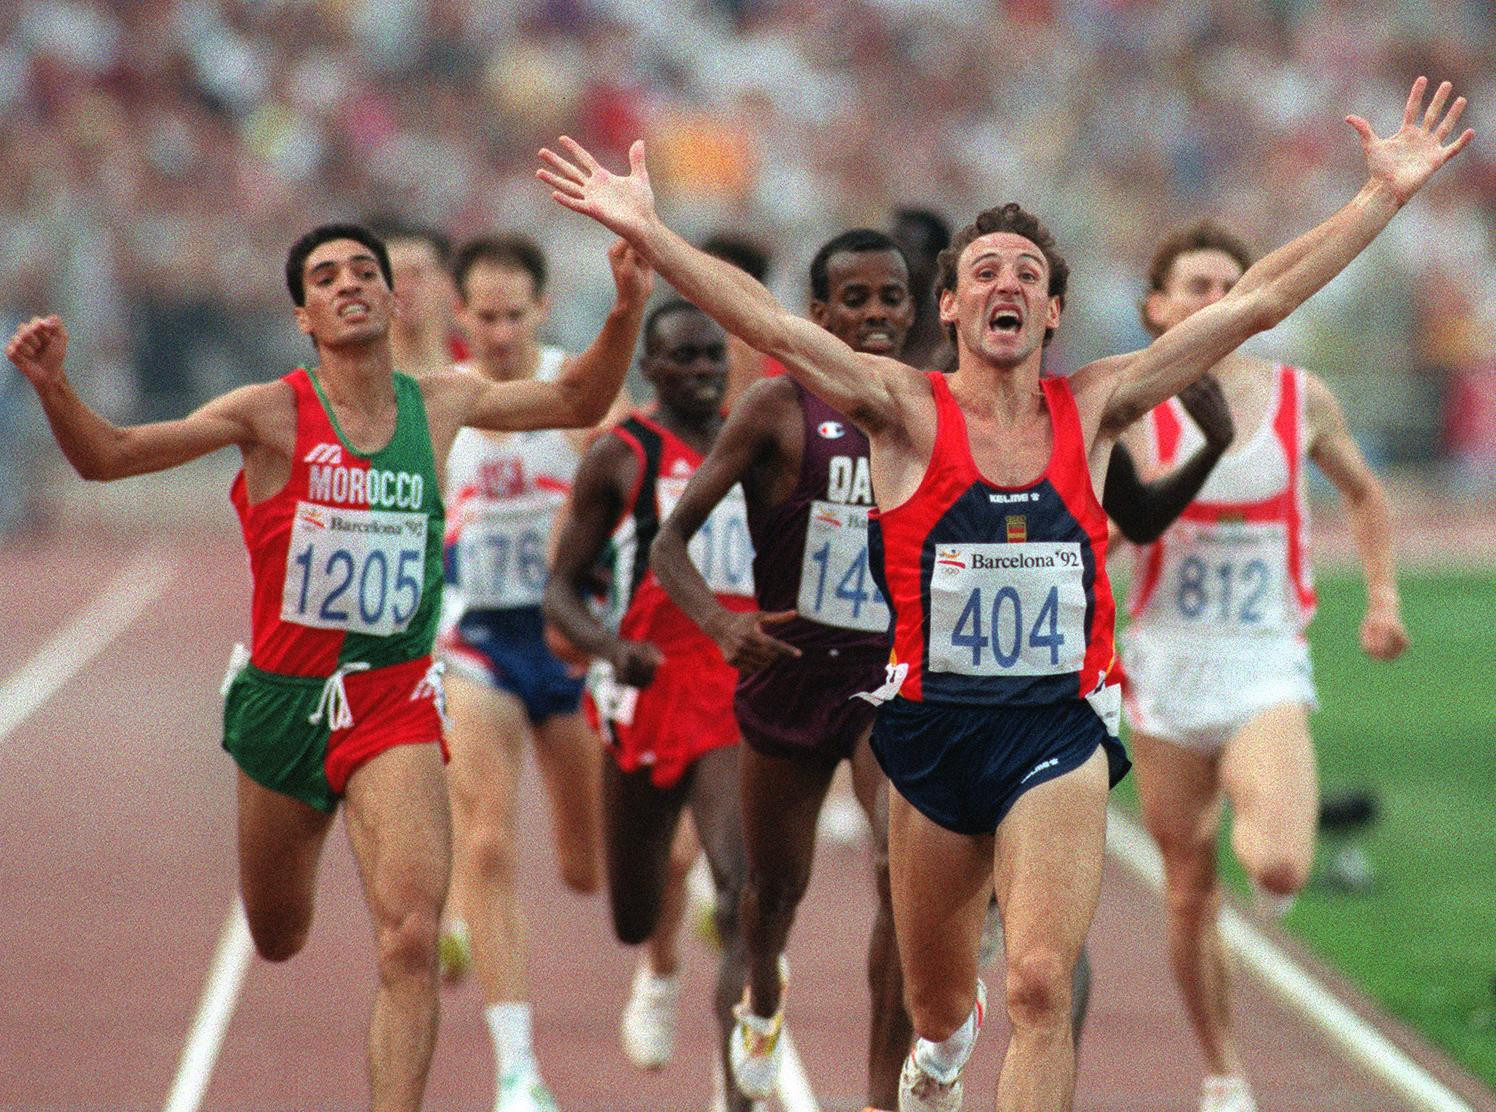 Barcelona 1992 men's 1500m champion Fermín Cacho is also considering legal action against Eufemiano Fuentes ©Getty Images